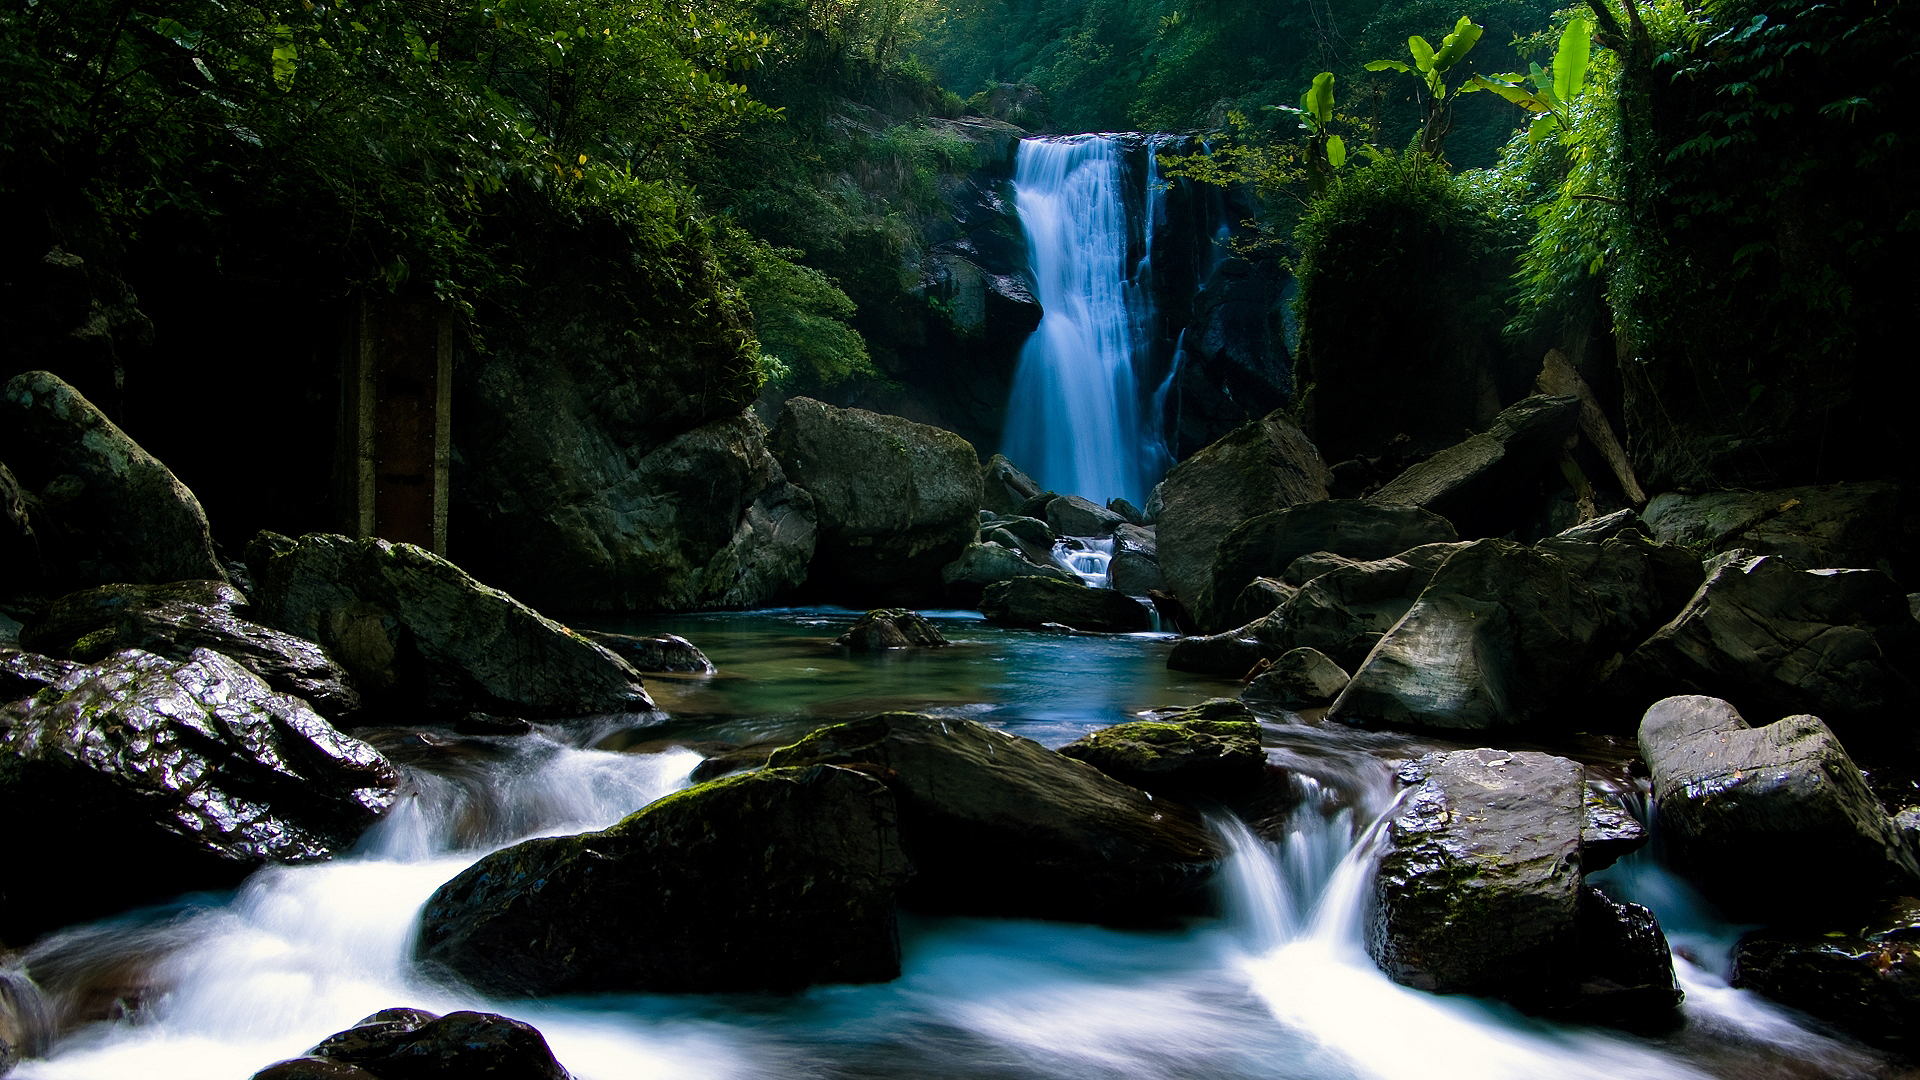 water falling nature fresh images cool nature hd wallpapers background